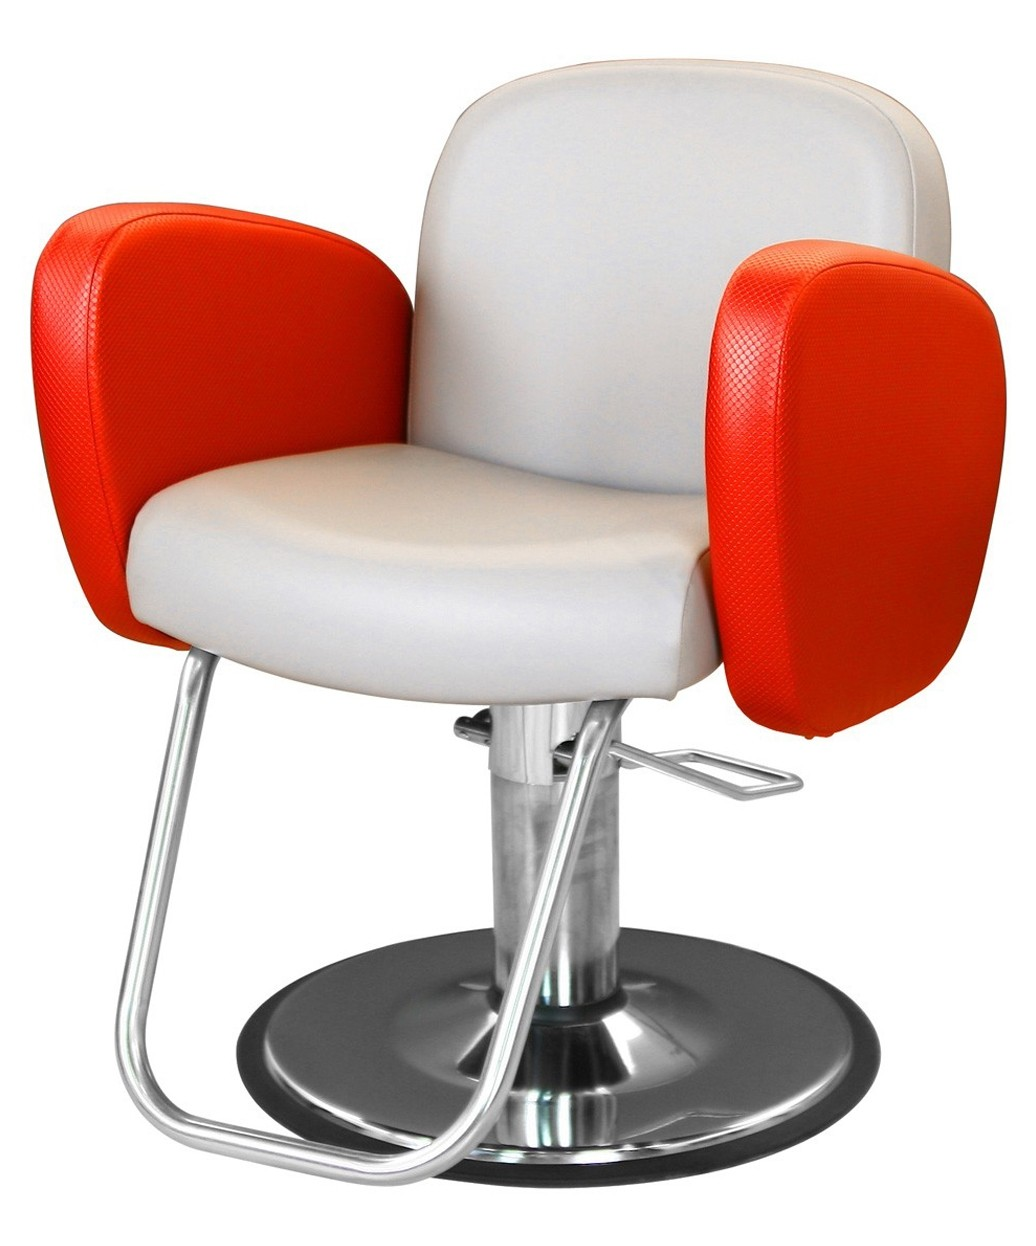 7200 ATL Styling Chair with Standard Base